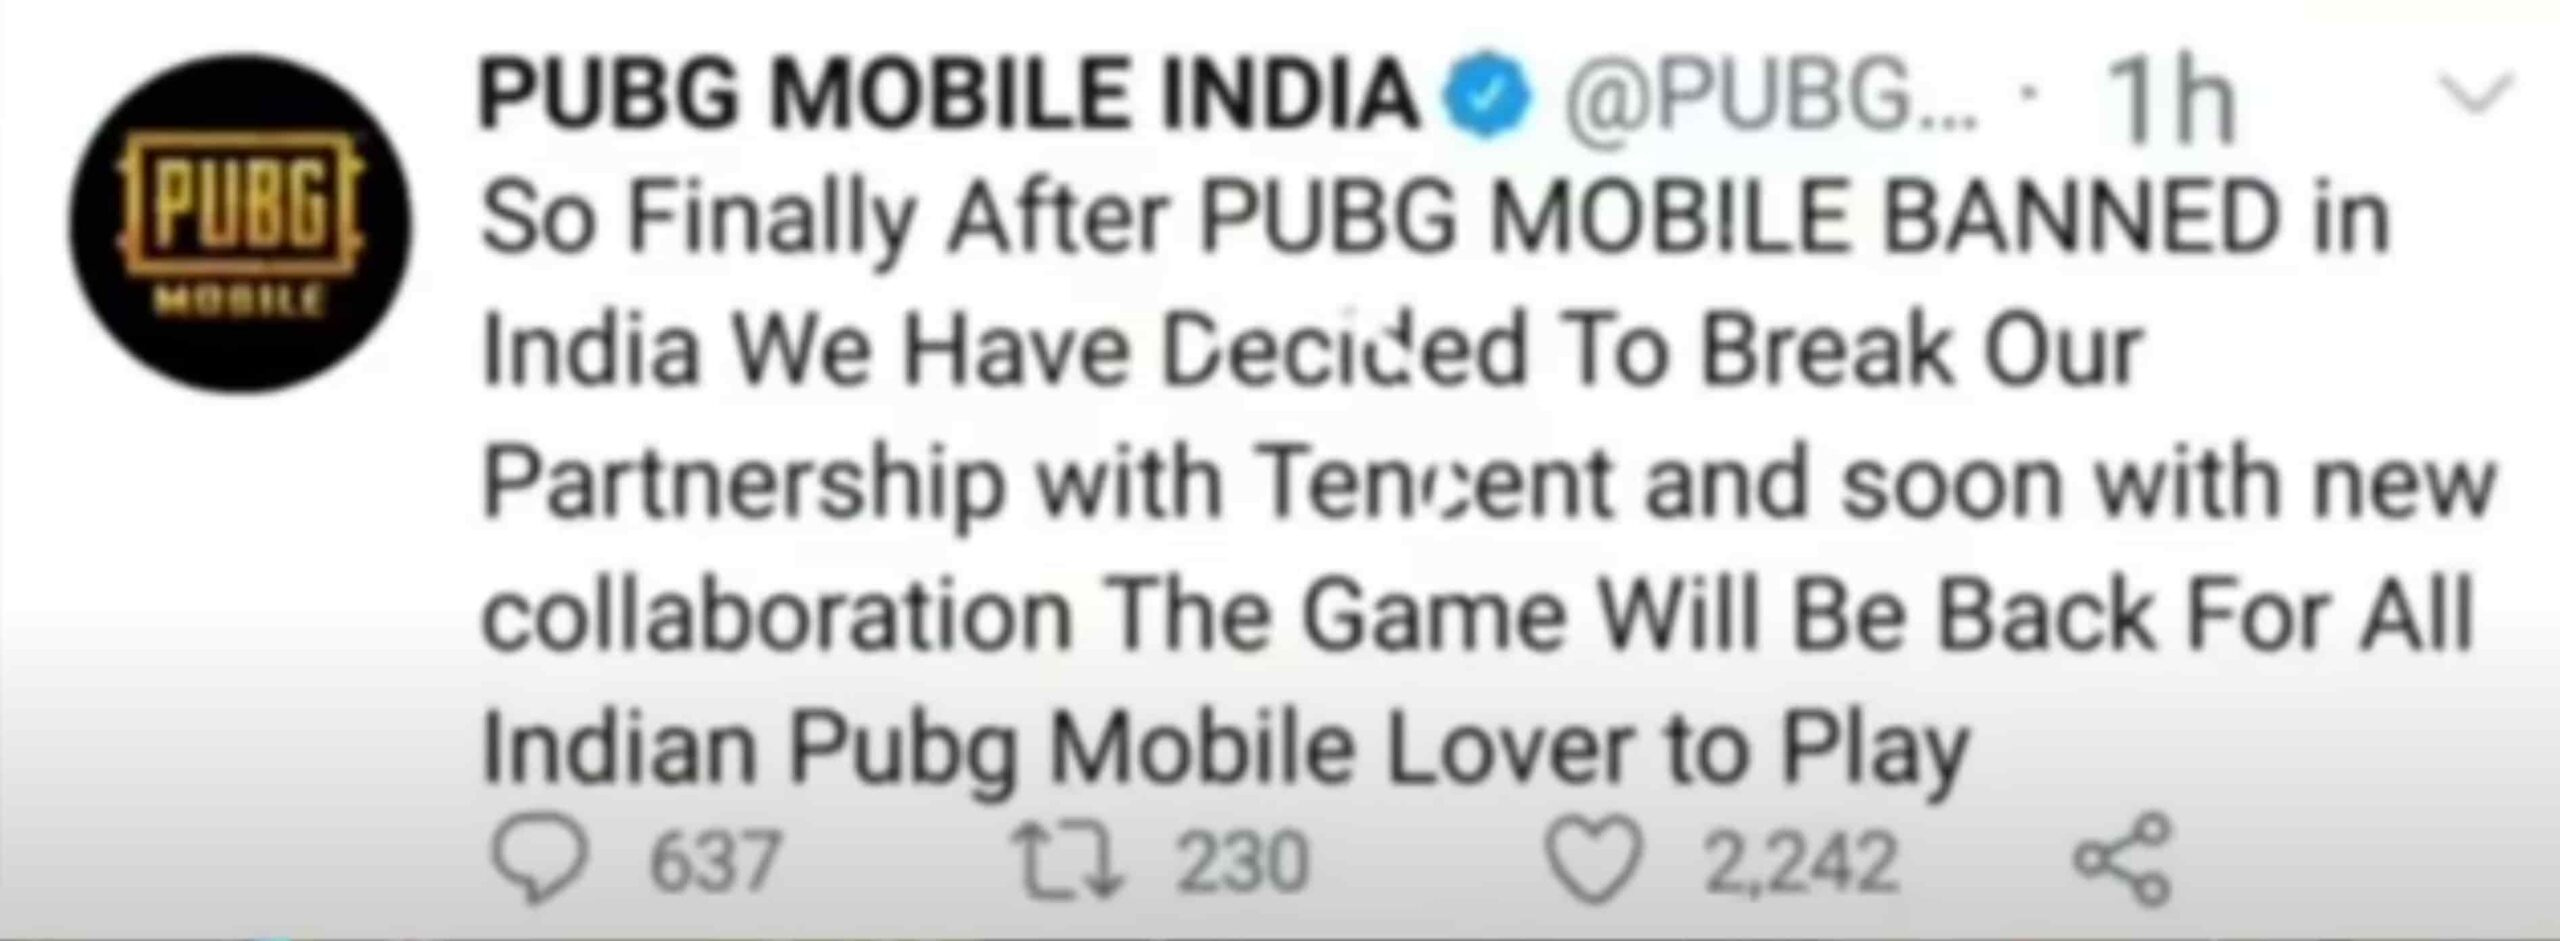 Pubg Mobiles banned removed in India? Pubg mobile India tweeted this